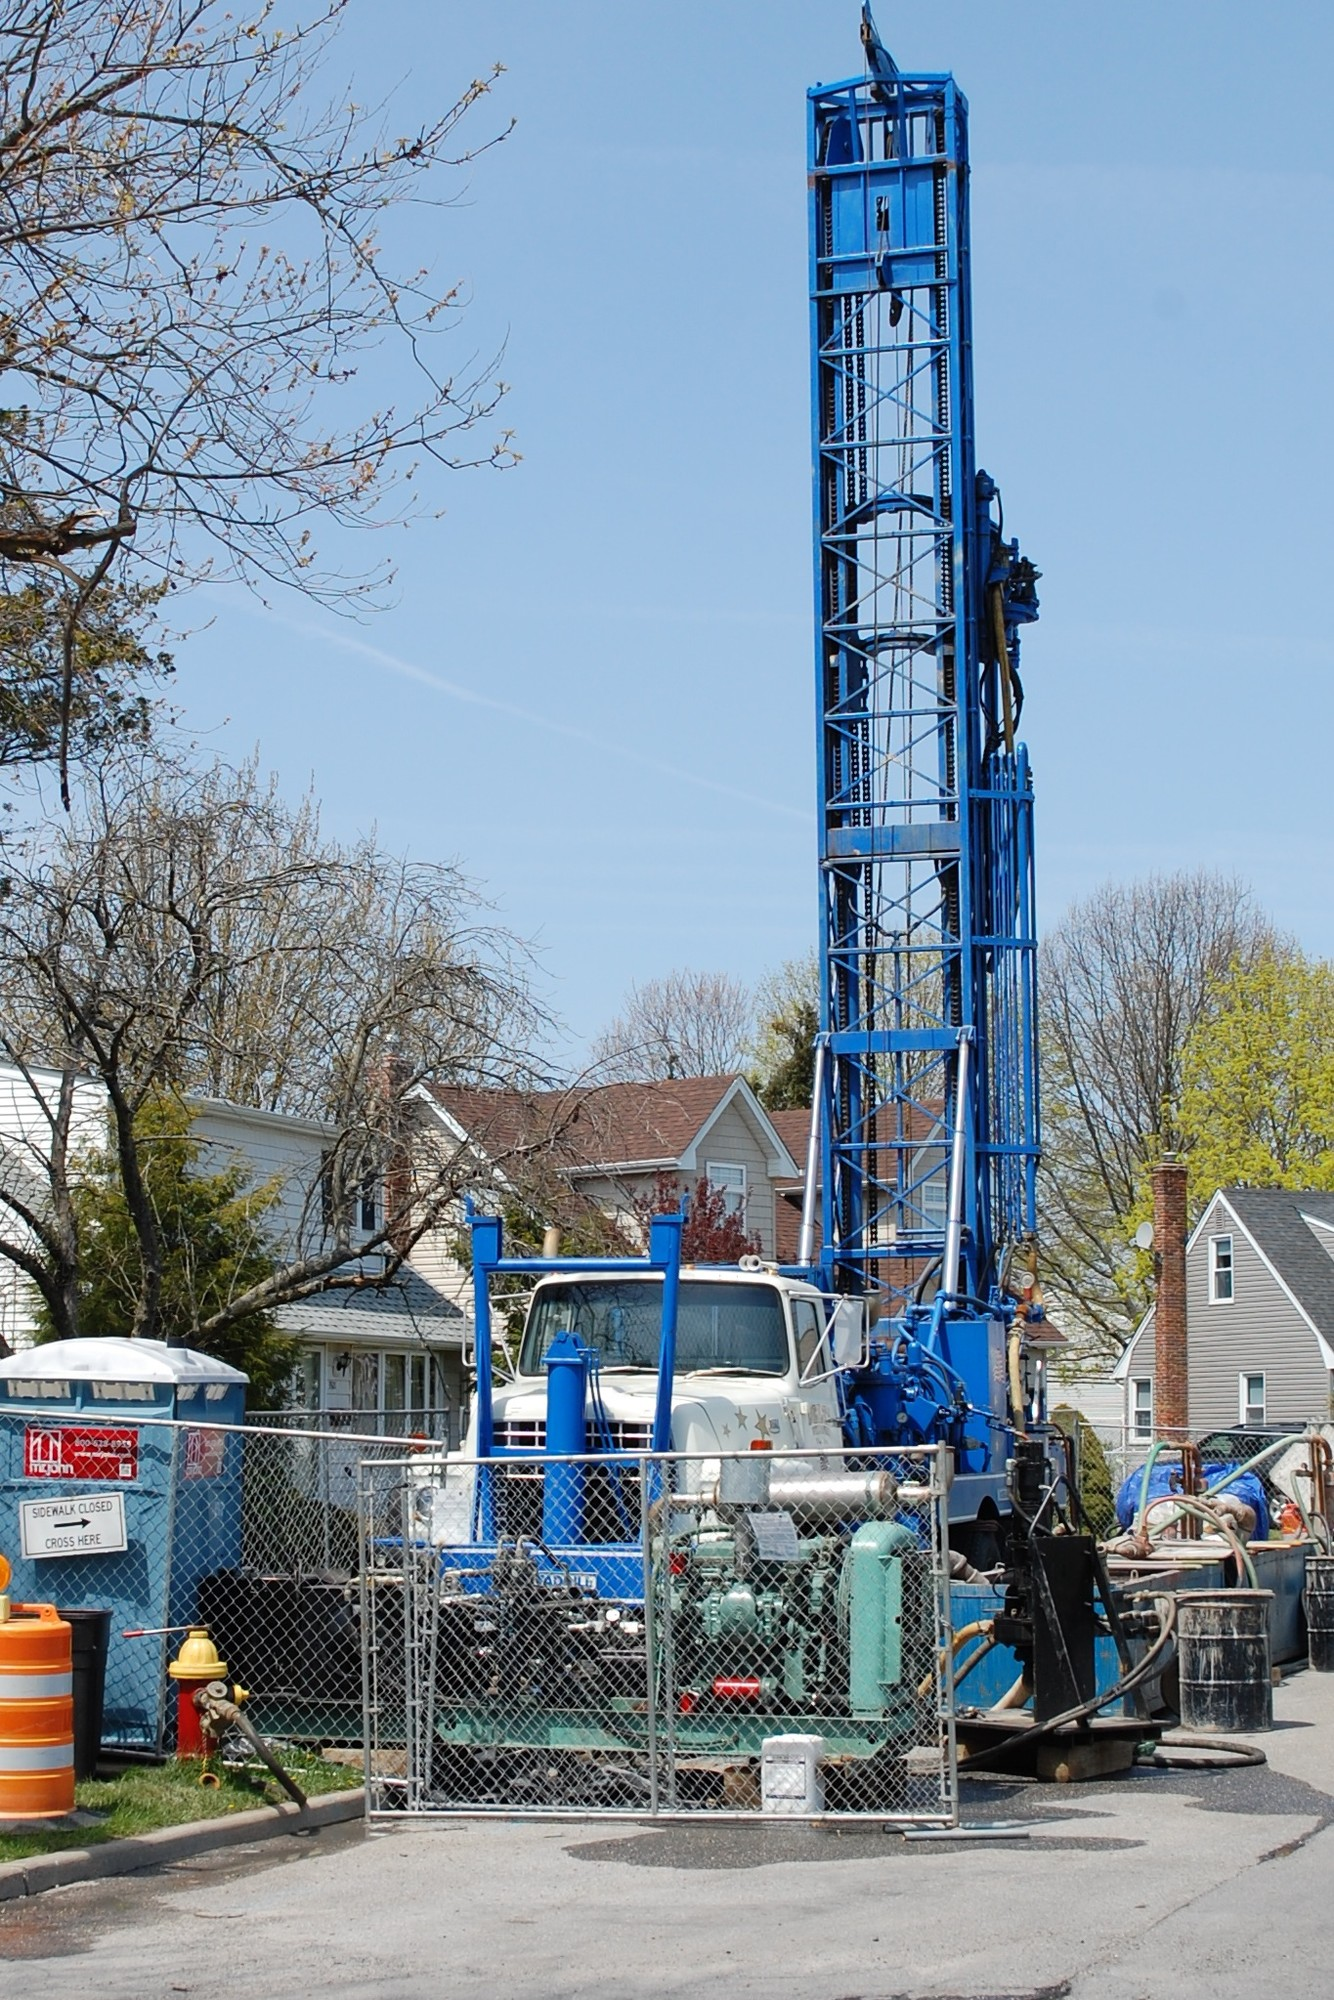 Monitoring wells are being drilled on residential streets in North Wantagh and northern Seaford to measure chemical contamination.